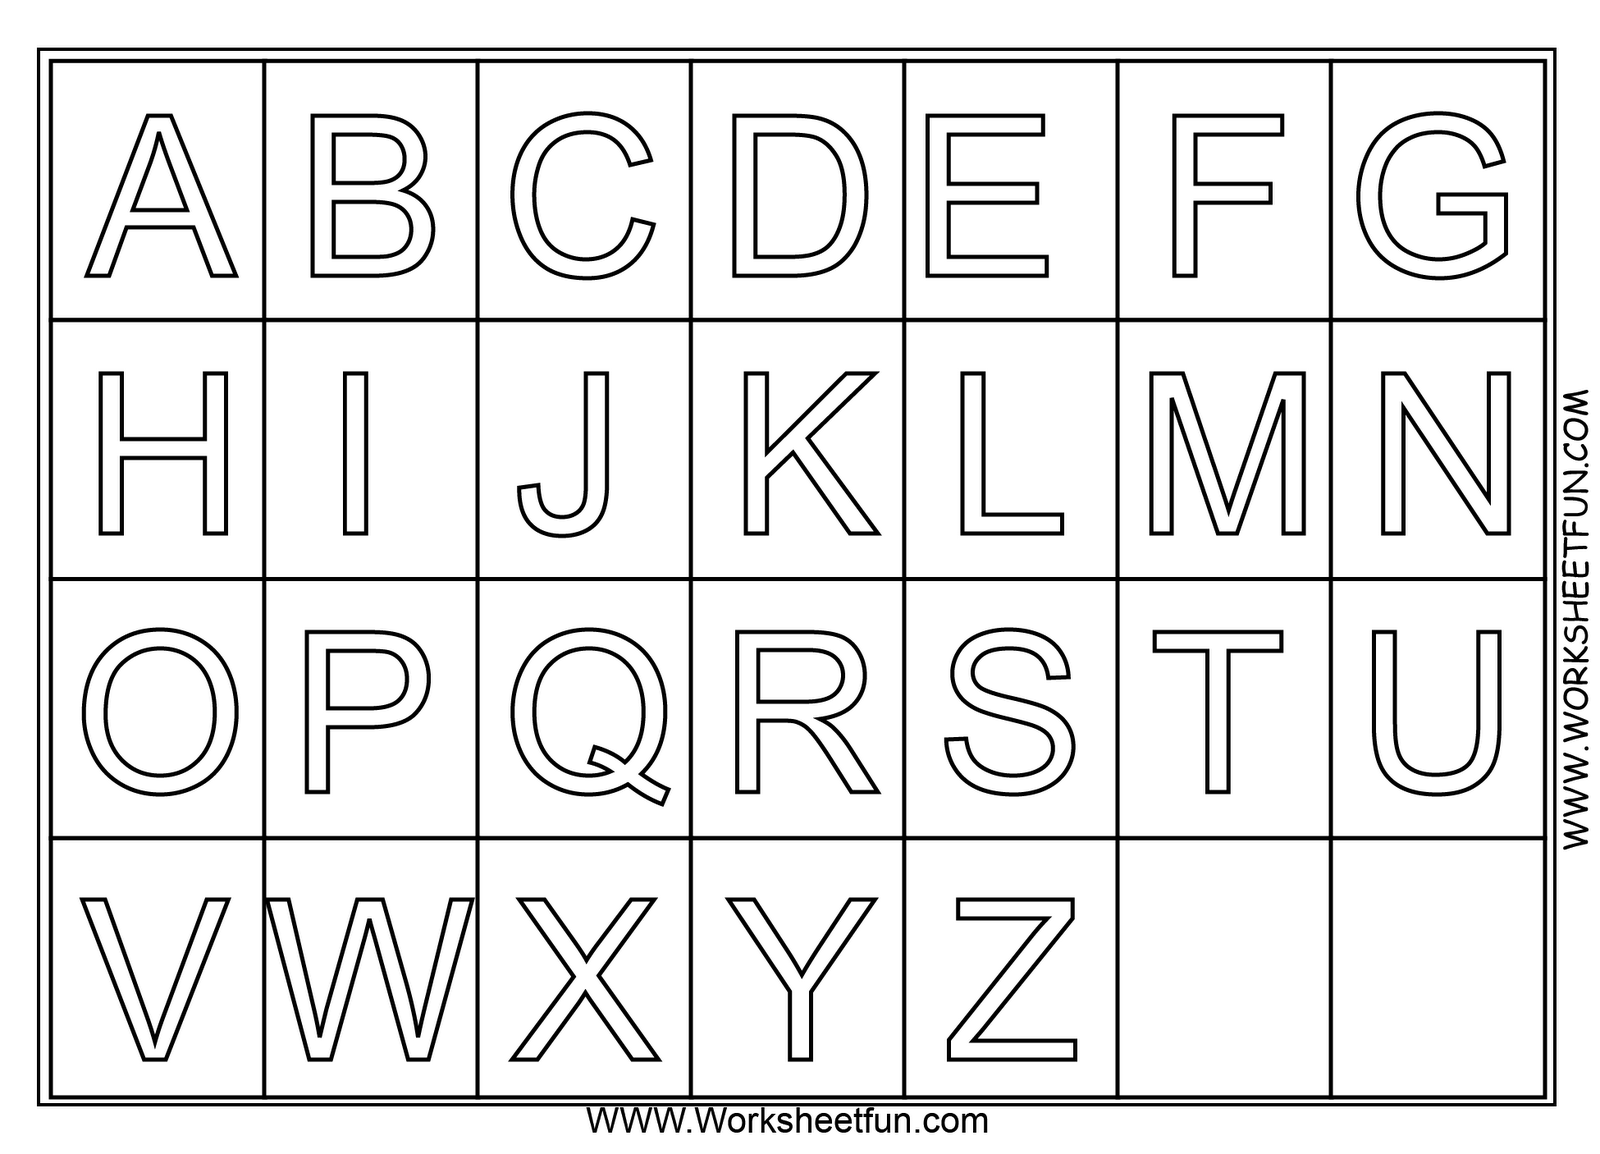 Coloring pages for alphabet - A Z Alphabet Coloring Pages